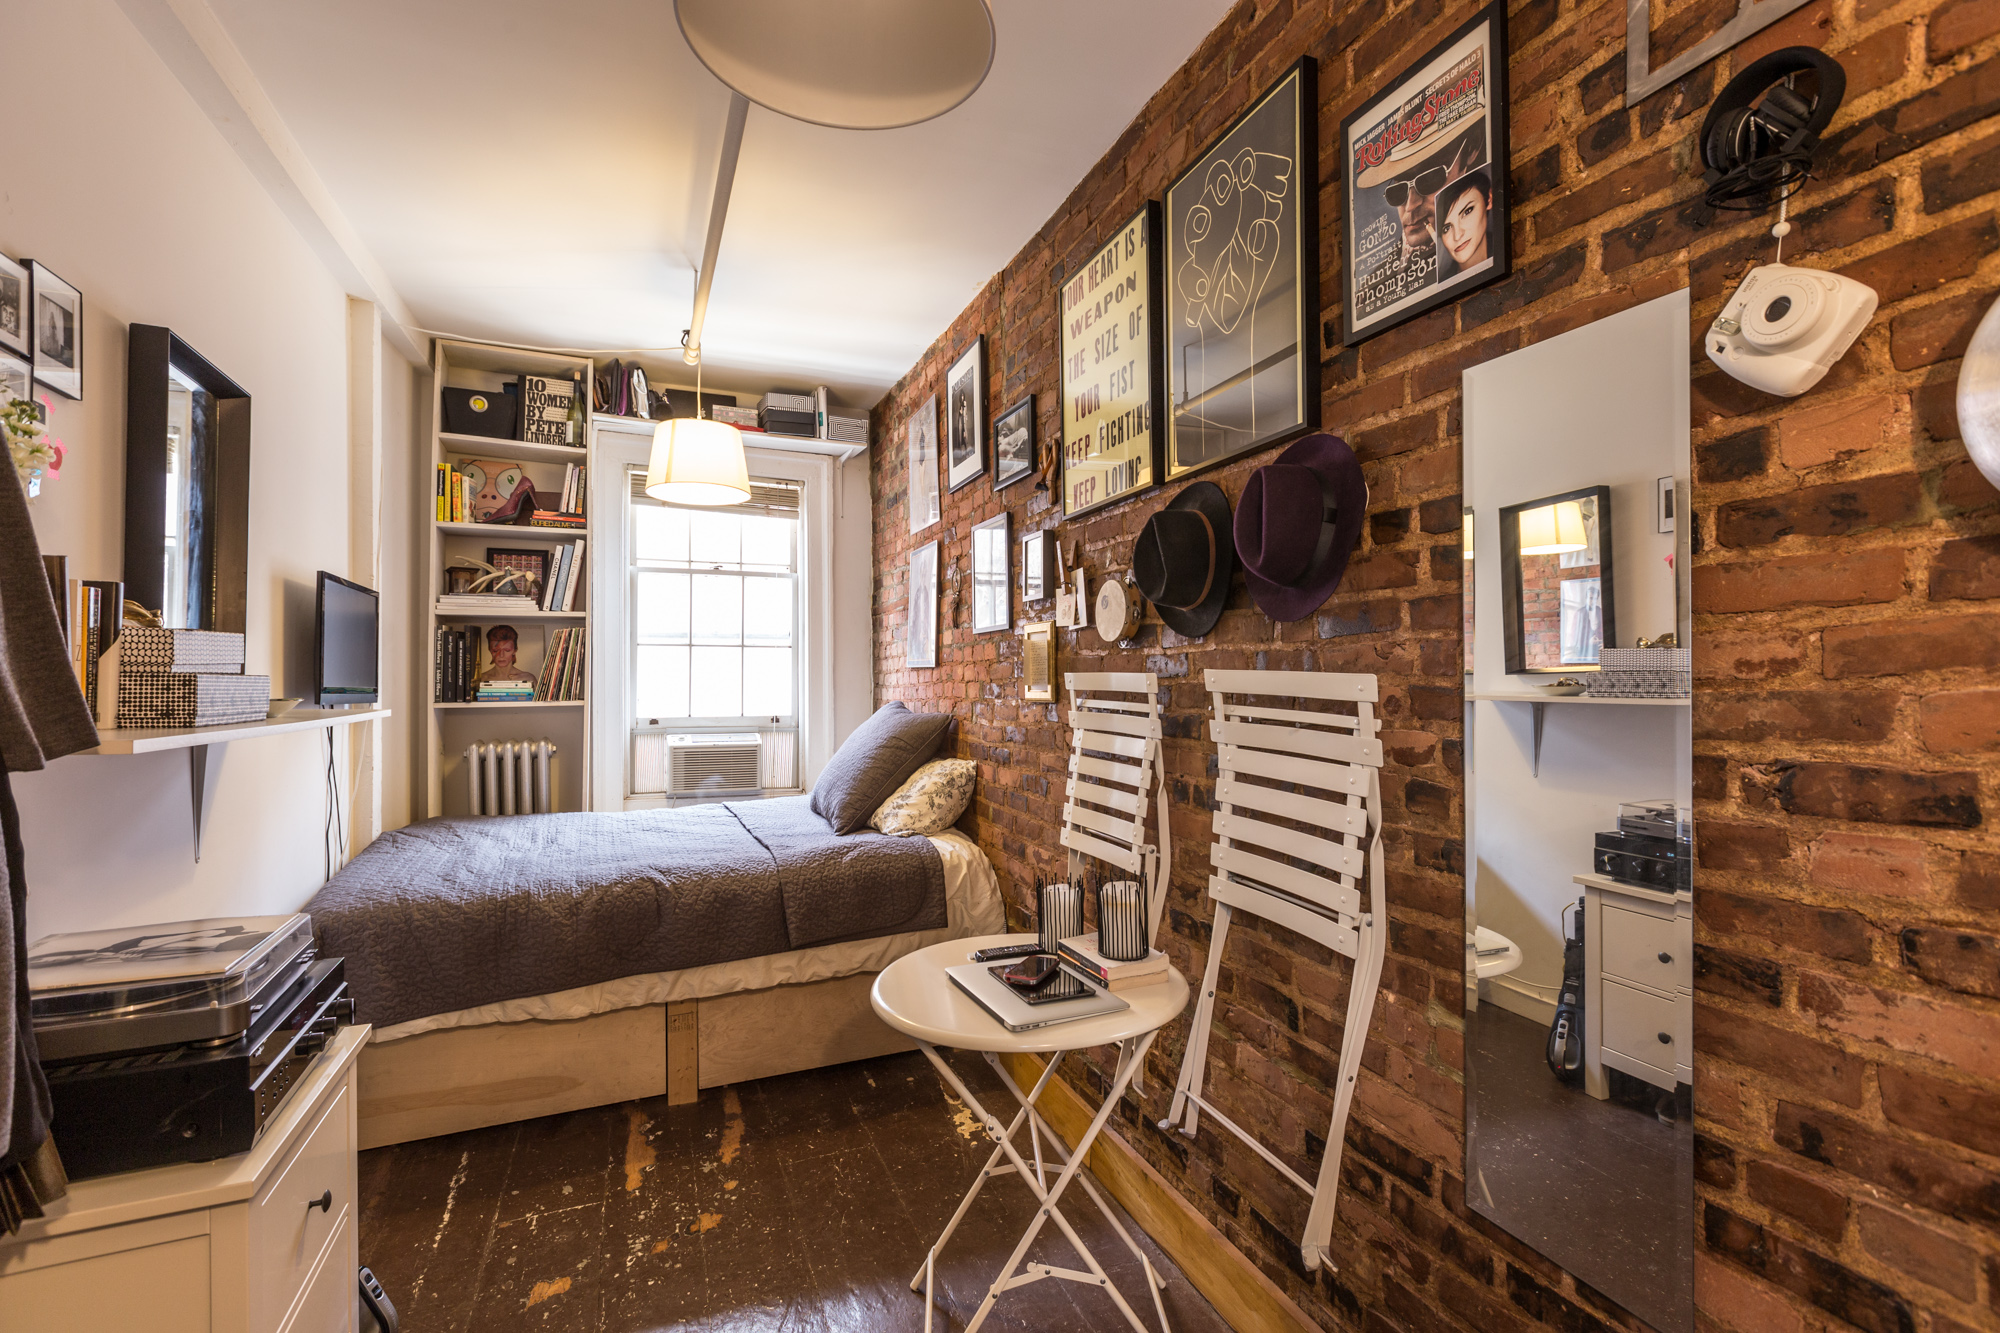 Mary Helen Rowell's famous 90 sq ft micro-apartment in the West Village of Manhattan.